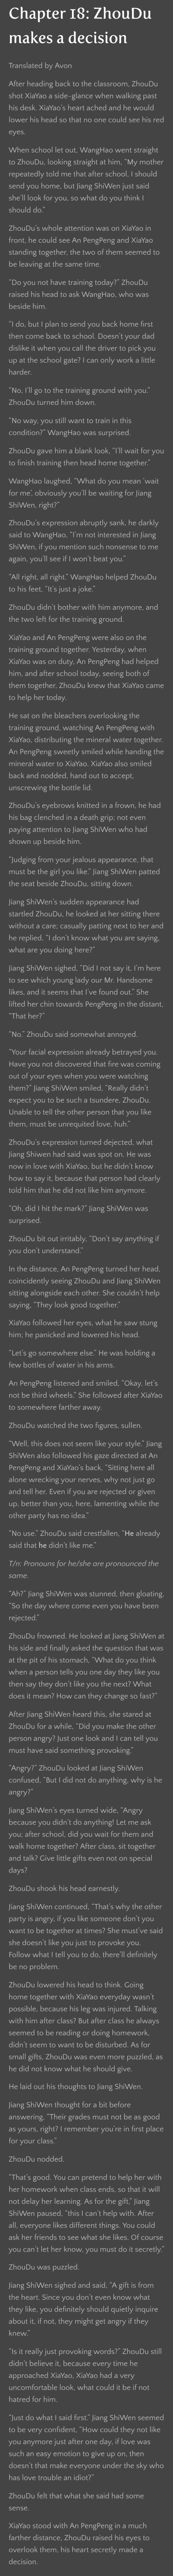 MW(R) Chapter 18